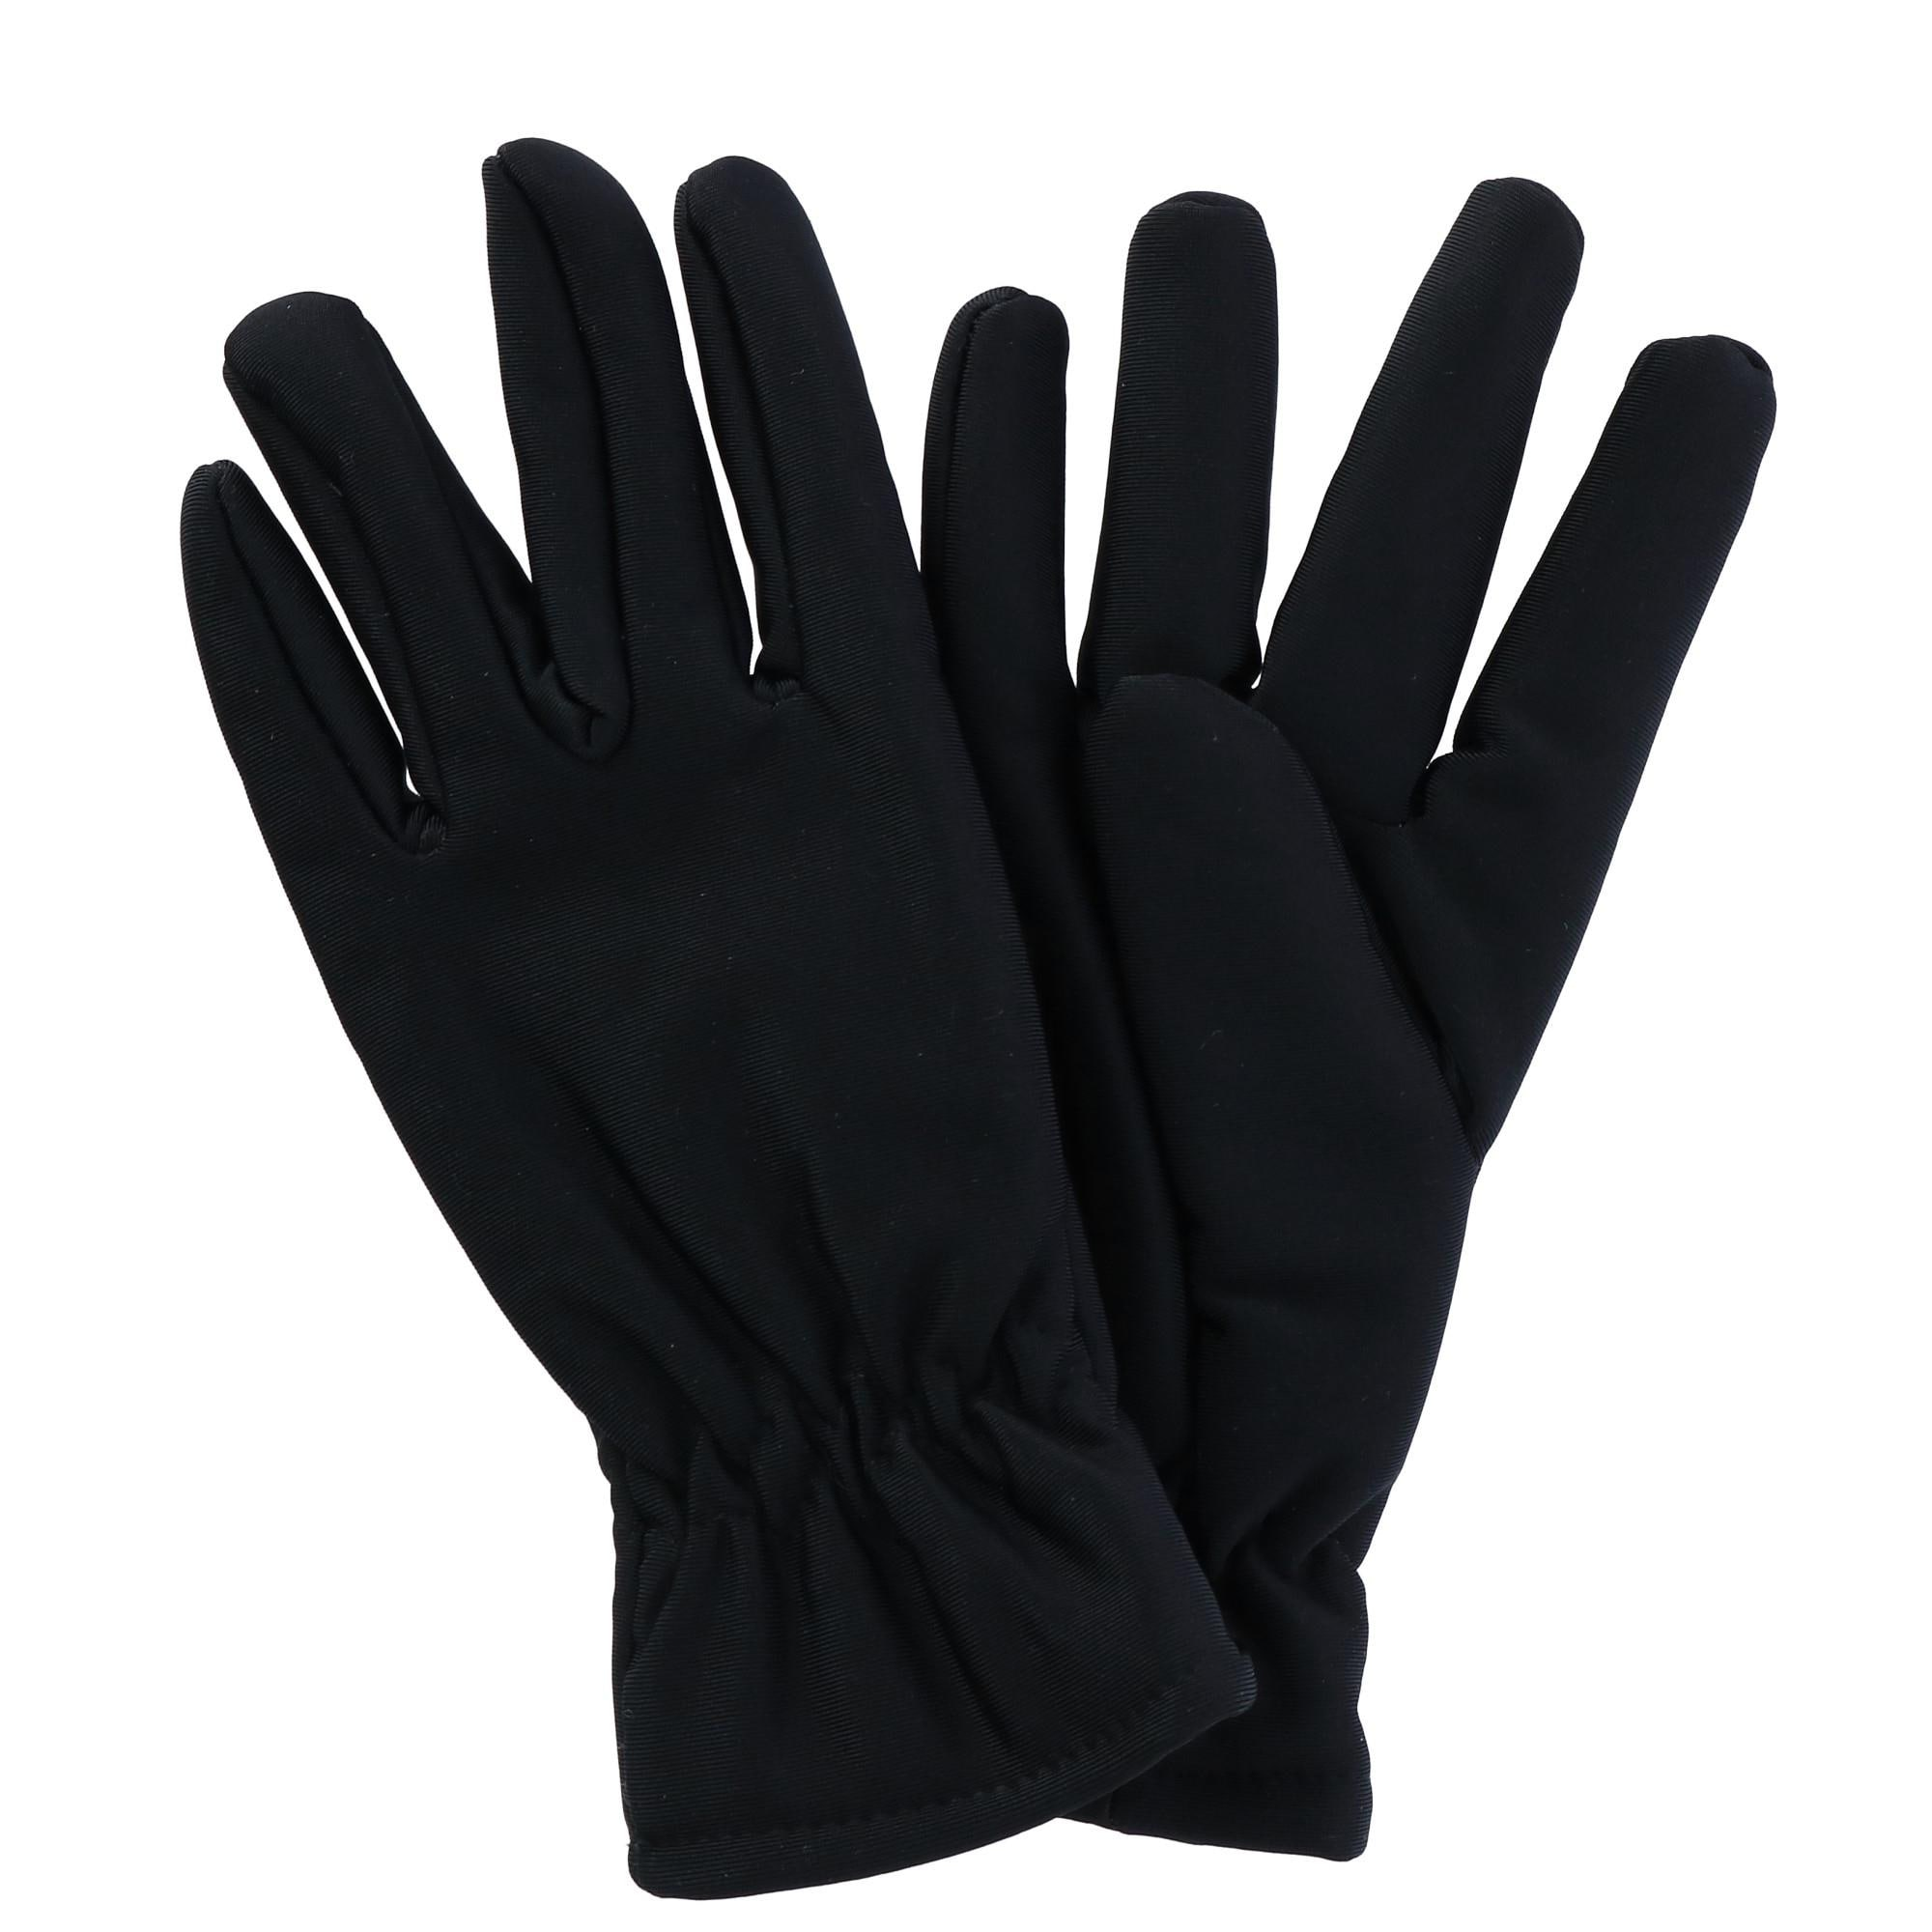 XL L Sizes: M New Women's Genuine Leather Gloves Winter Insulated with Zipper